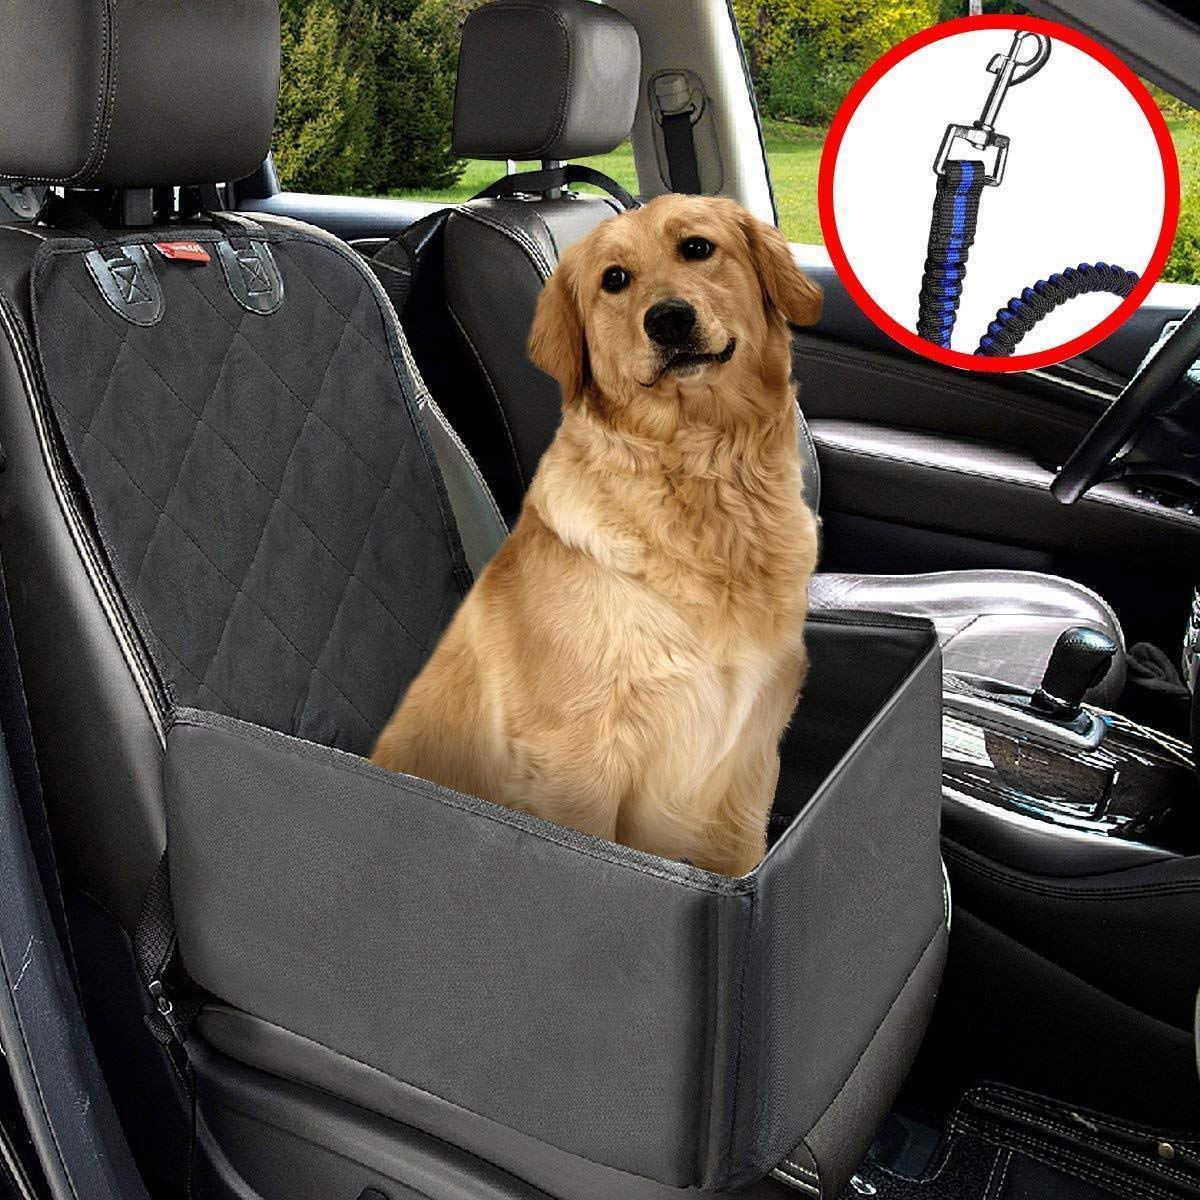 Generic Erproof Coverble Carrier Carrier booster Pet Dog seggiolino auto forniture da viaggio impermeabile copertura Pet Dog Car T